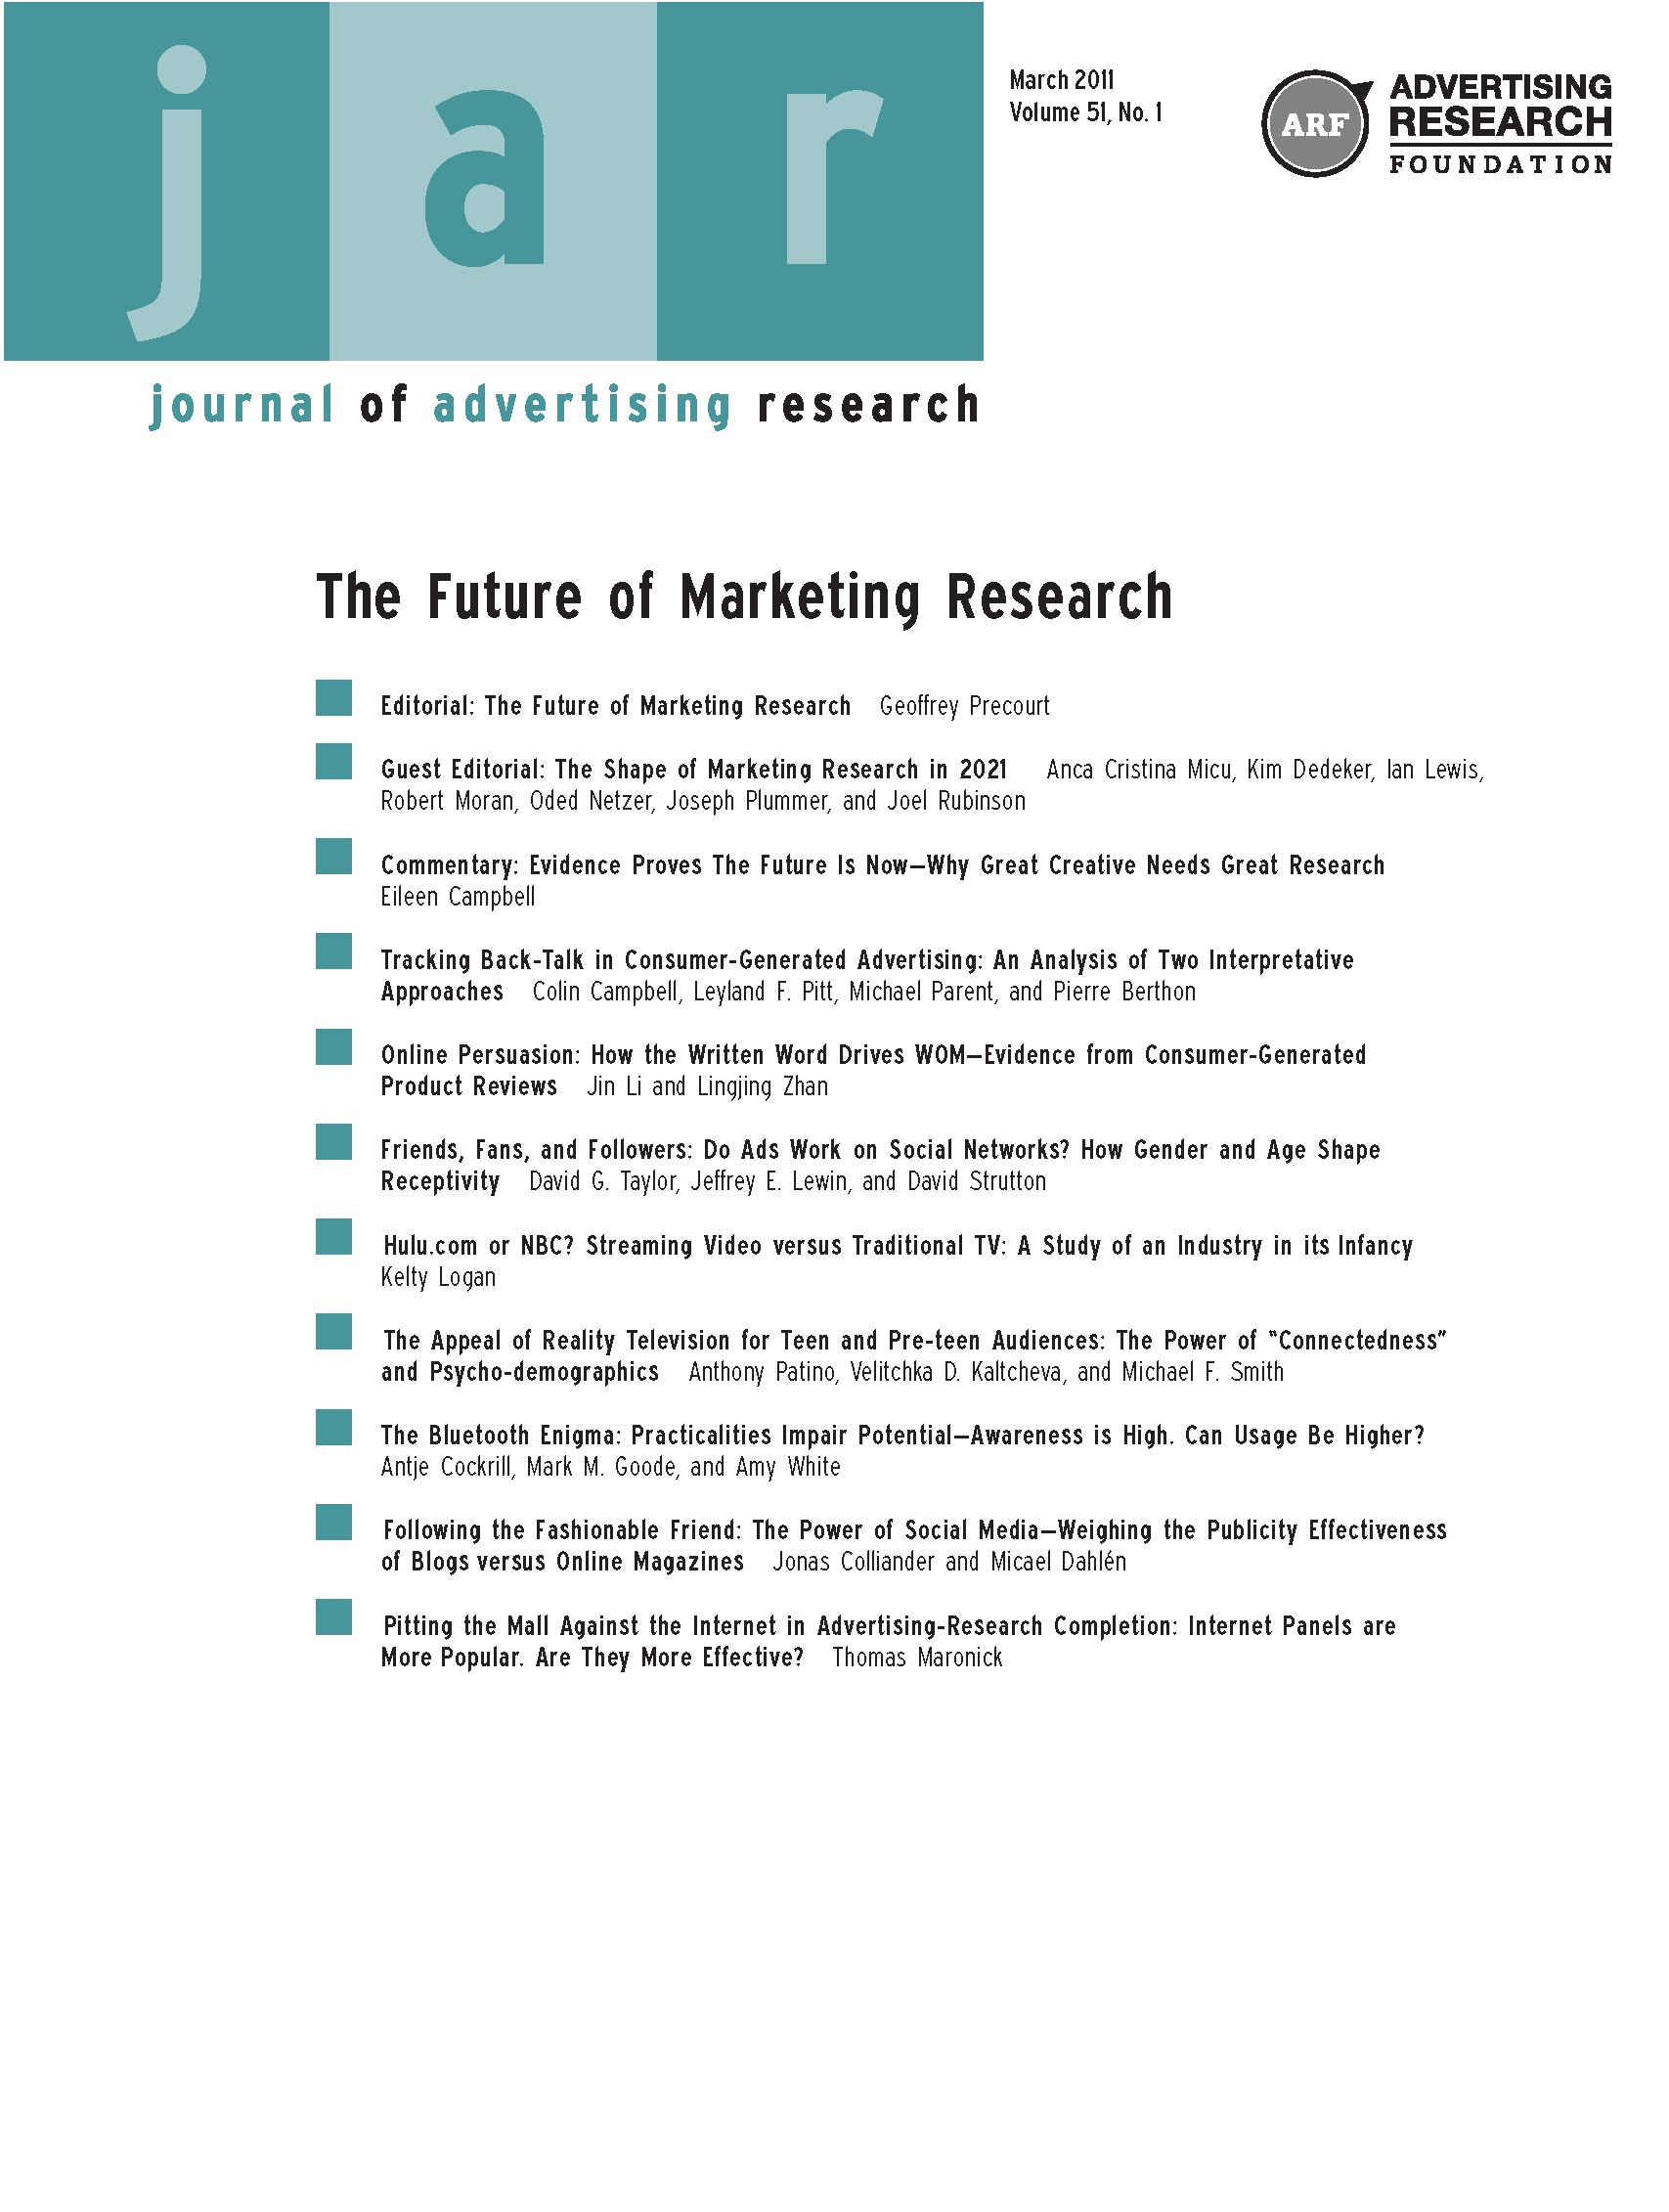 Marketing research: a selection of sites